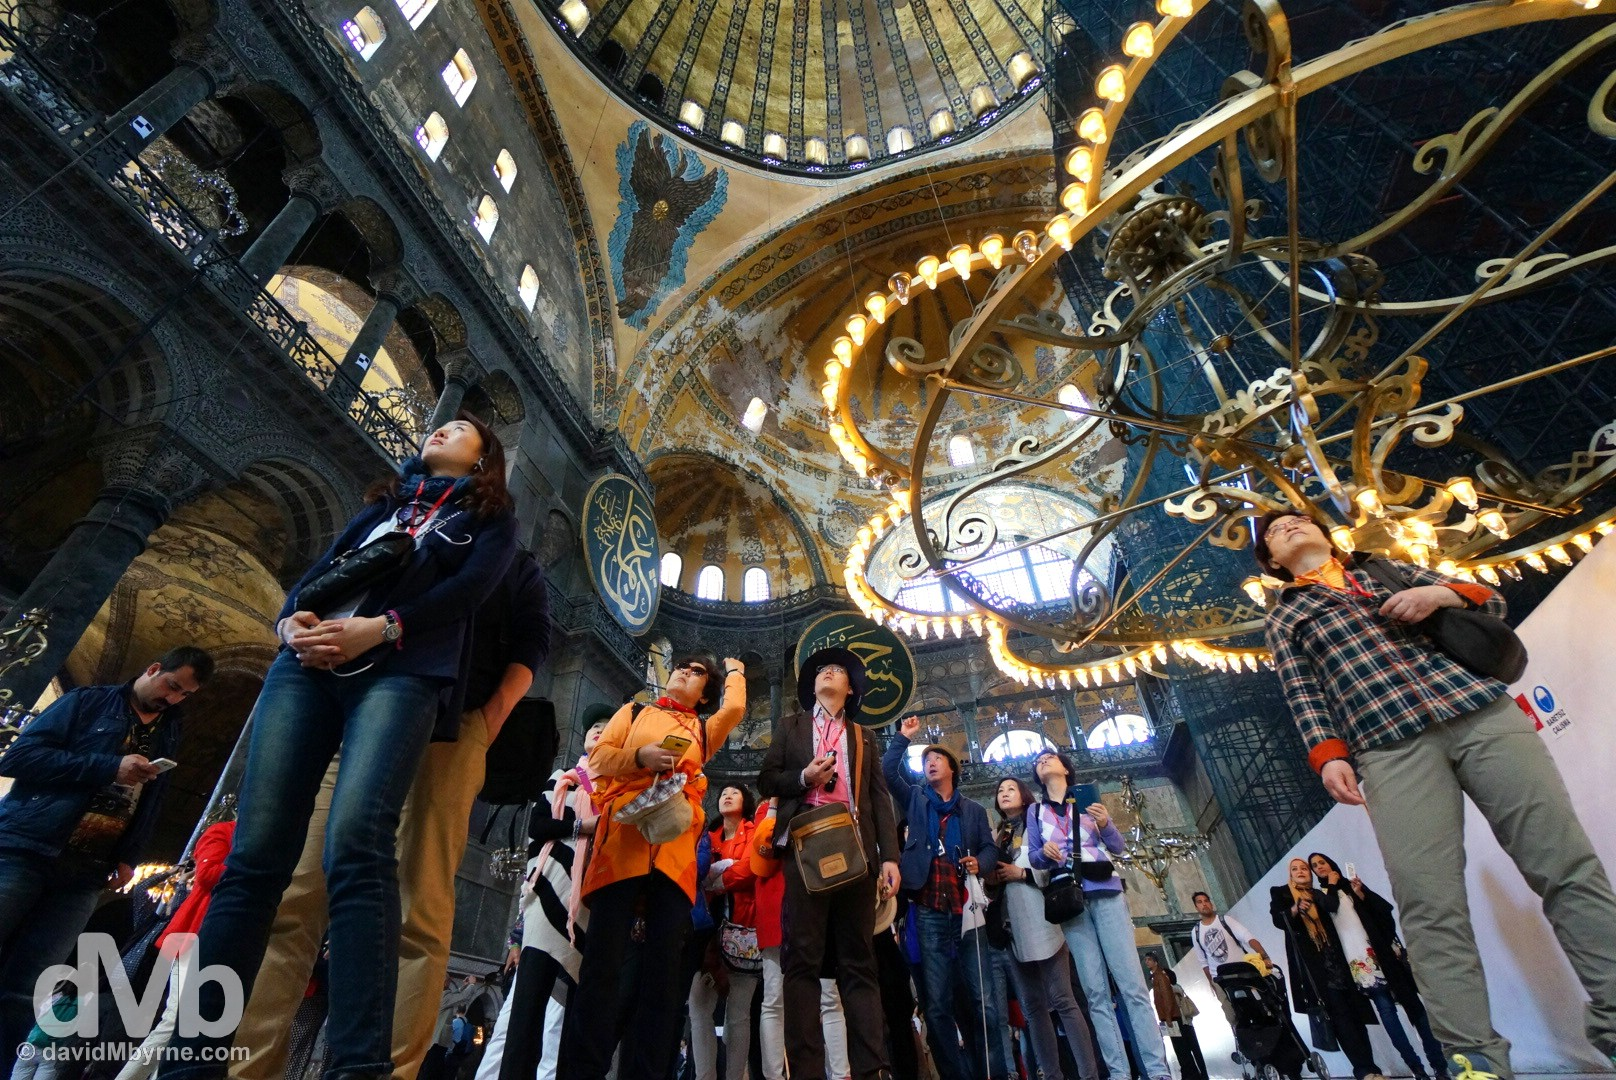 A group of flag-following Korean tourists admiring the interior of the Hagia Sophia in Istanbul, Turkey. April 10, 2014.